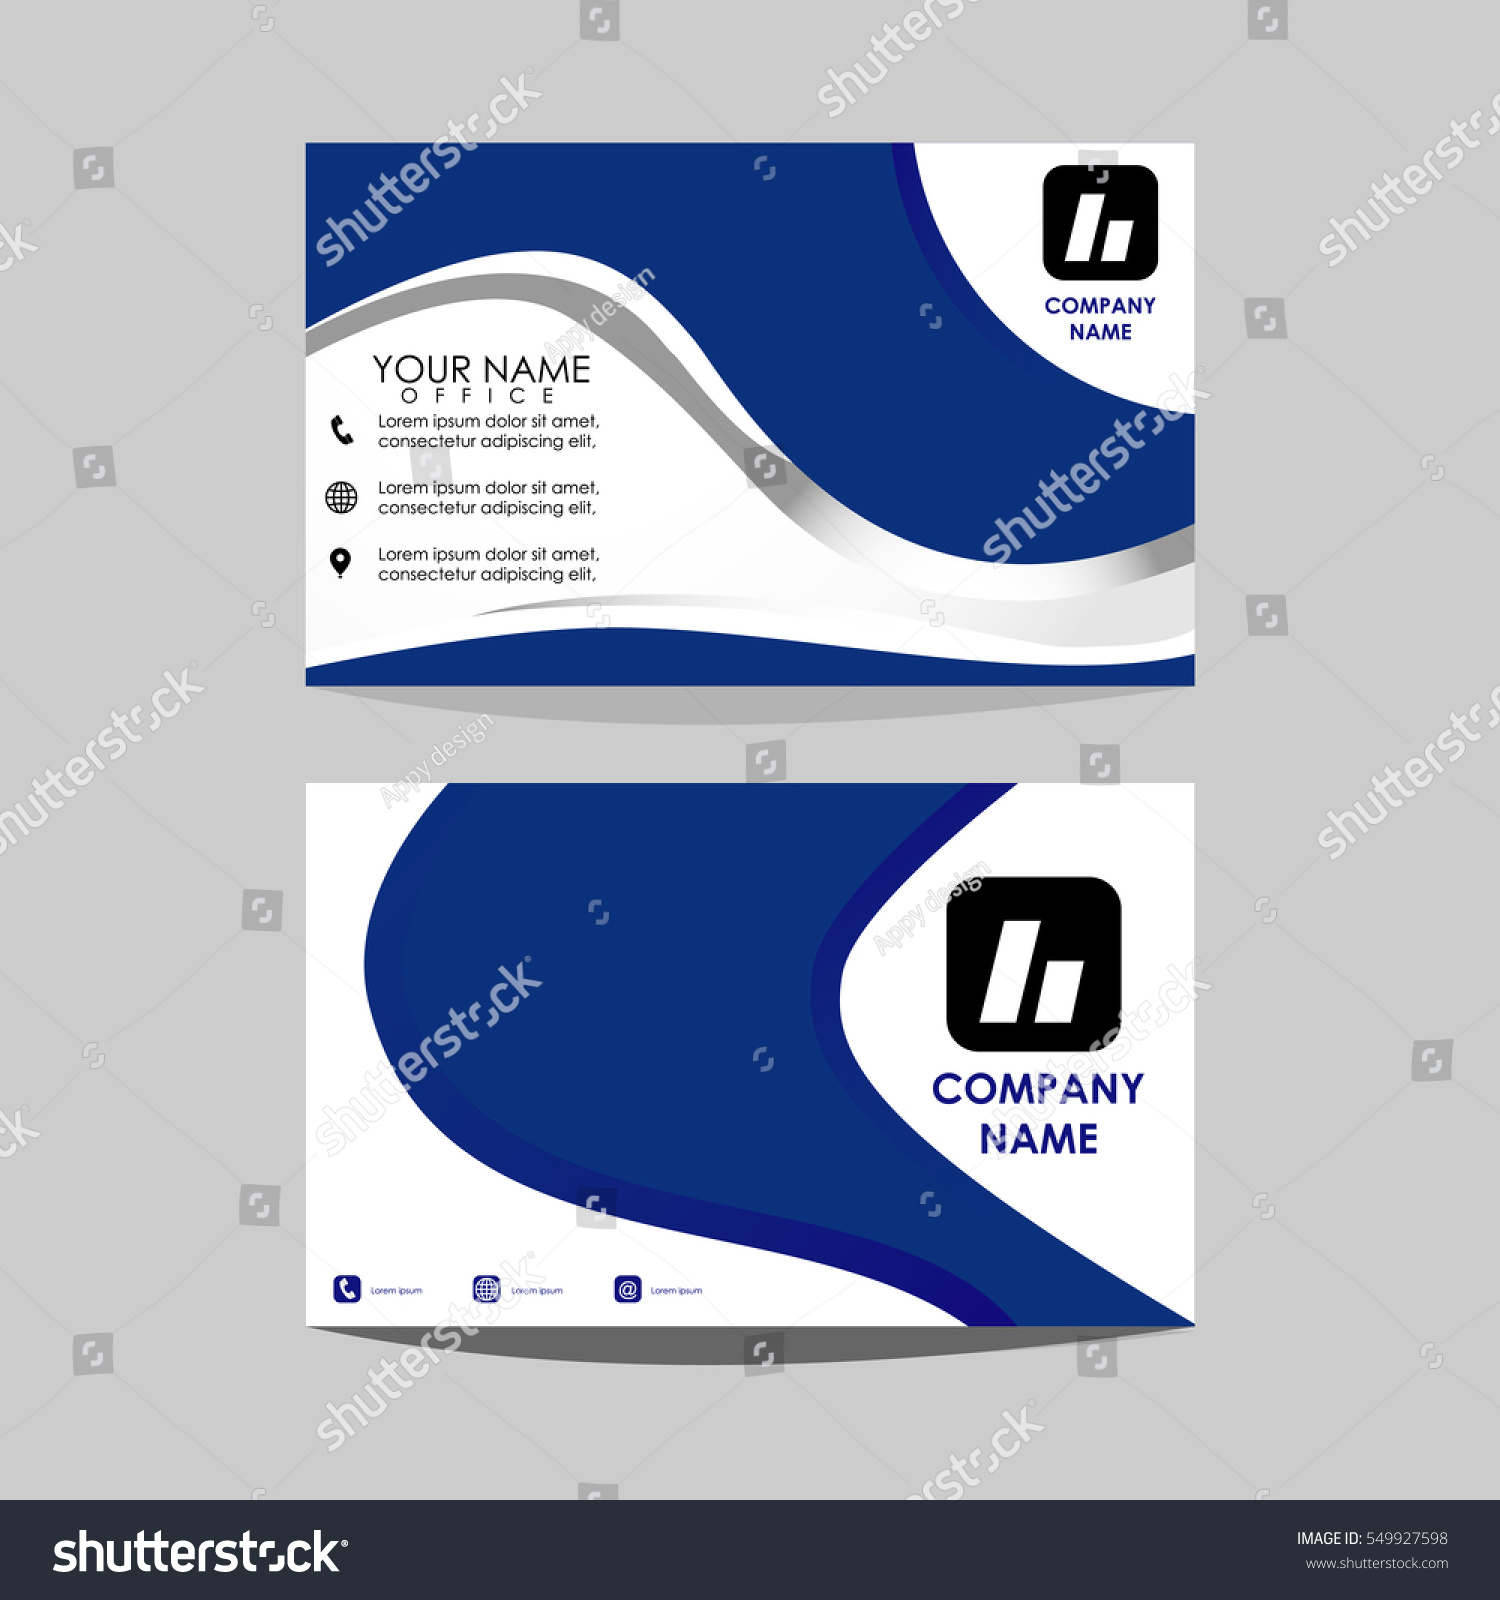 Layout Template Id Card Business Card Stock Vector 549927598 ...